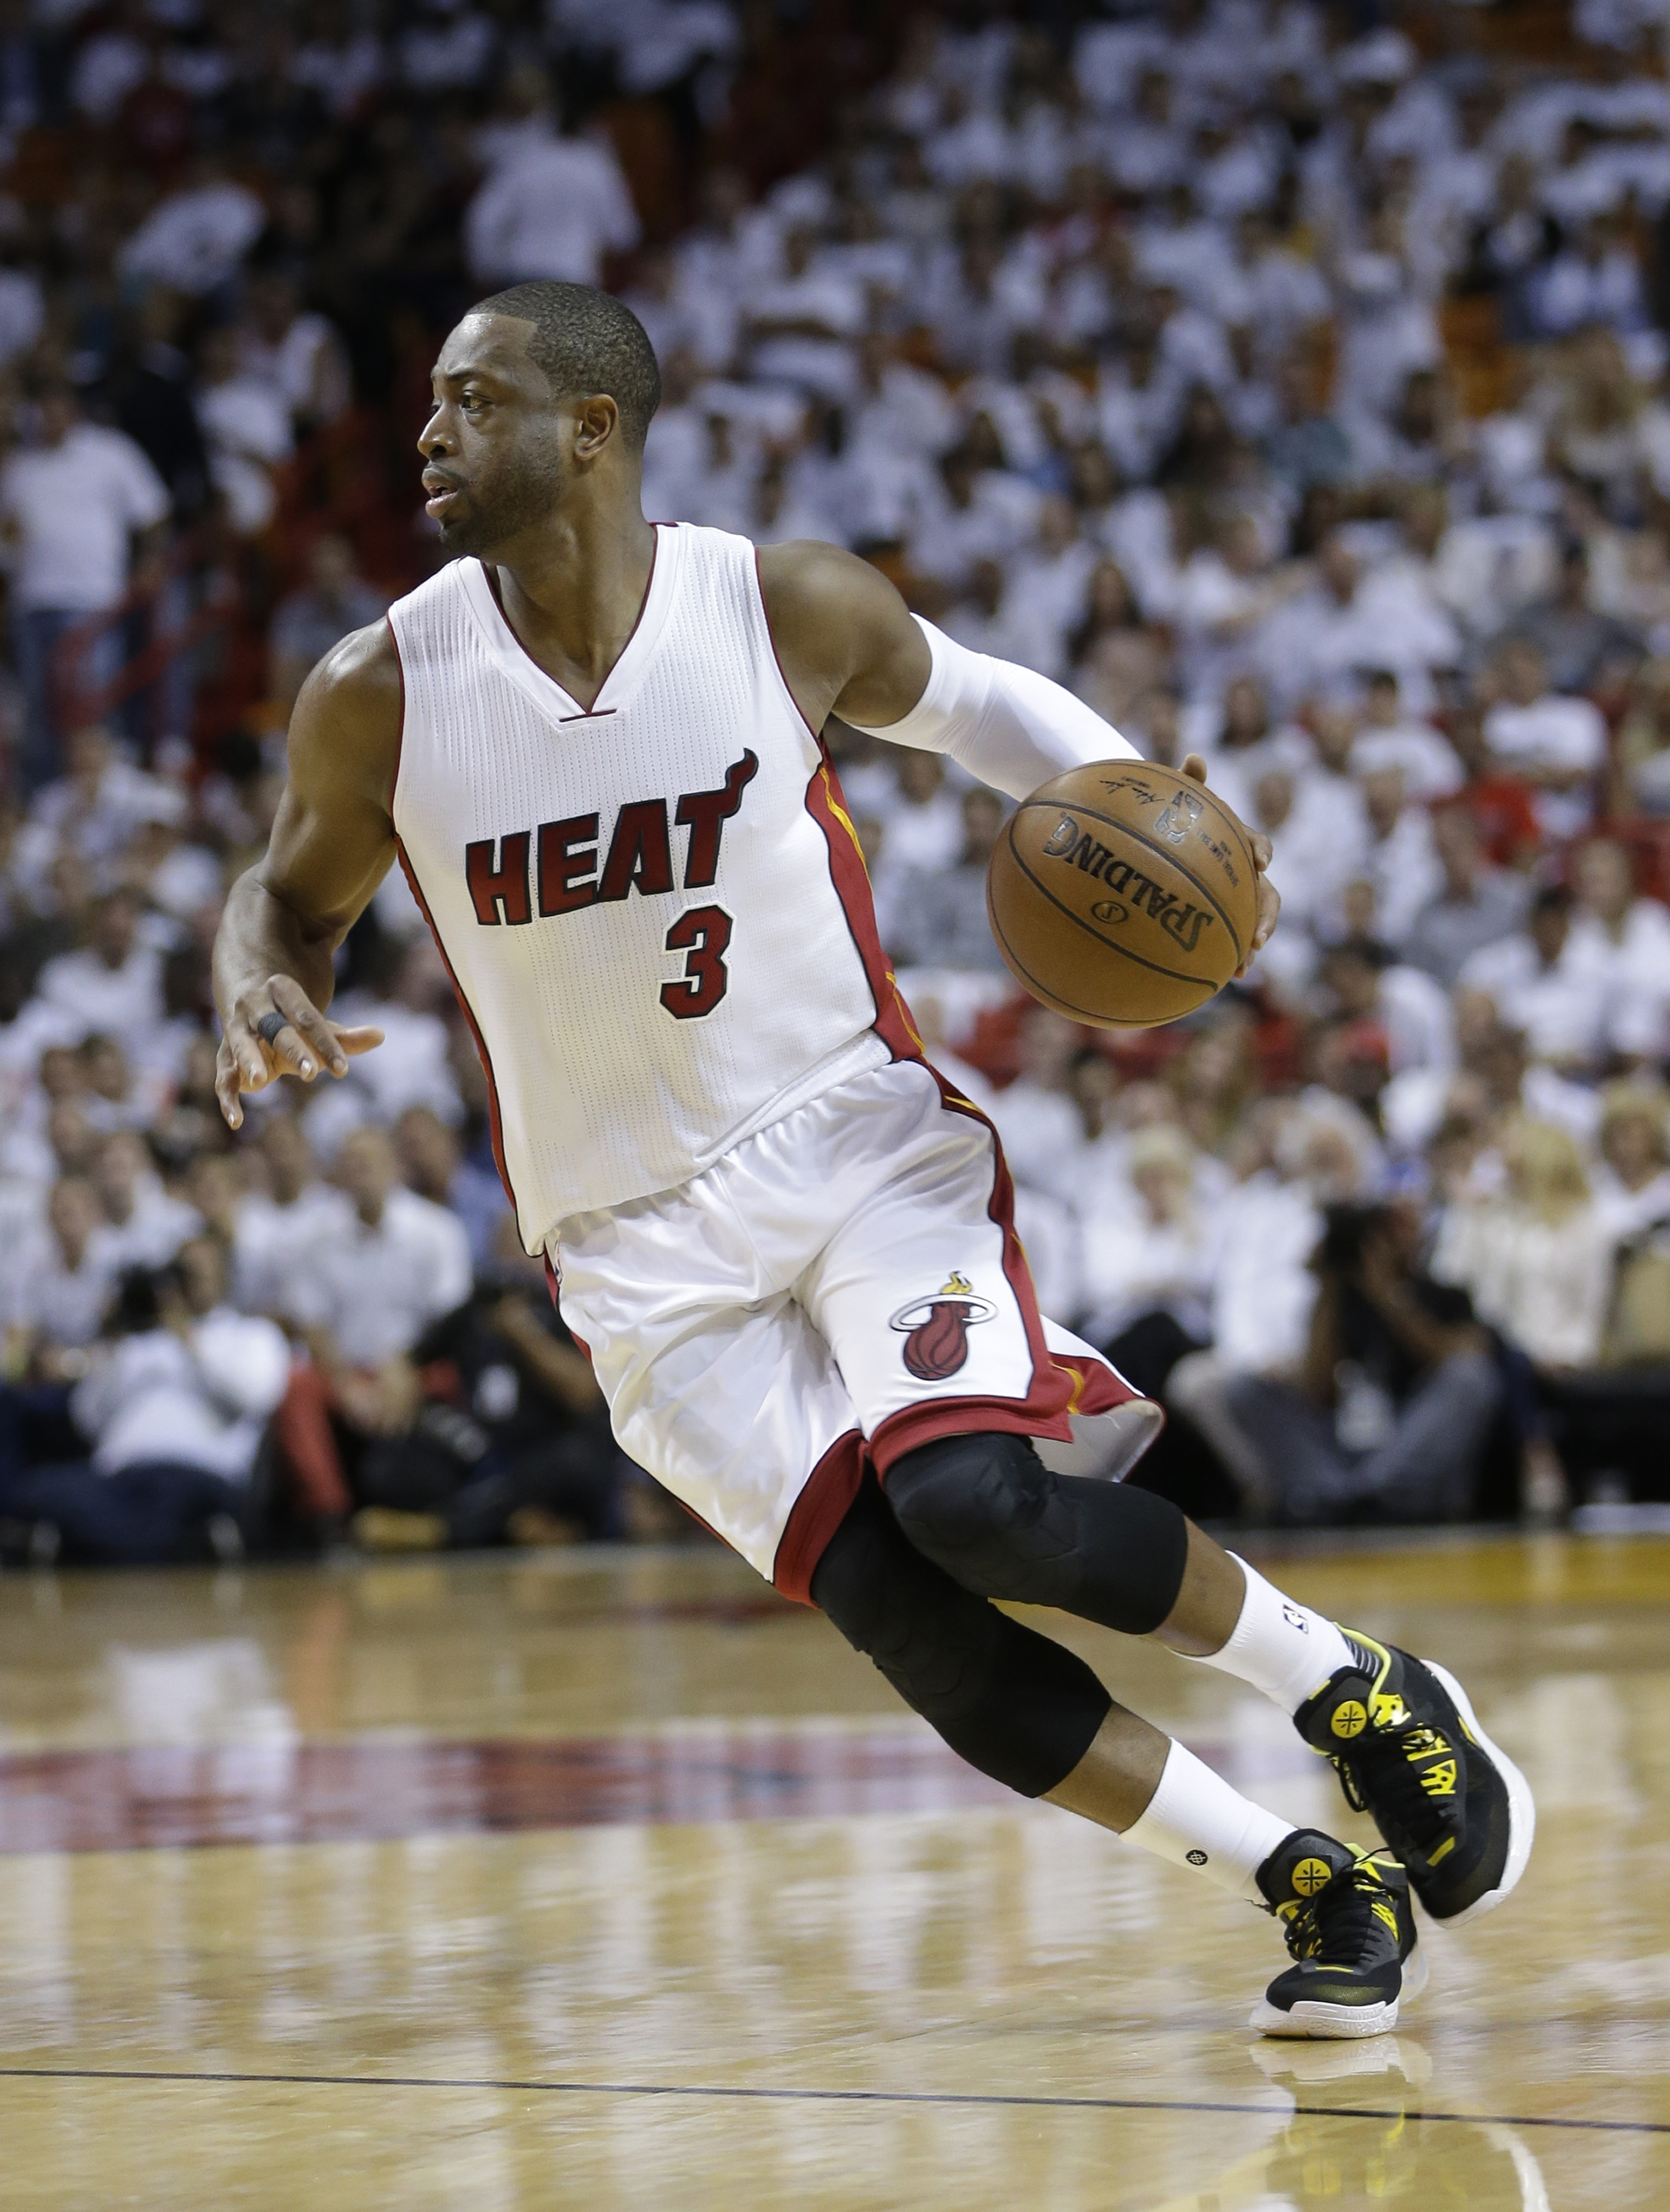 Heat star Dwayne Wade a cover model for ESPN body issue